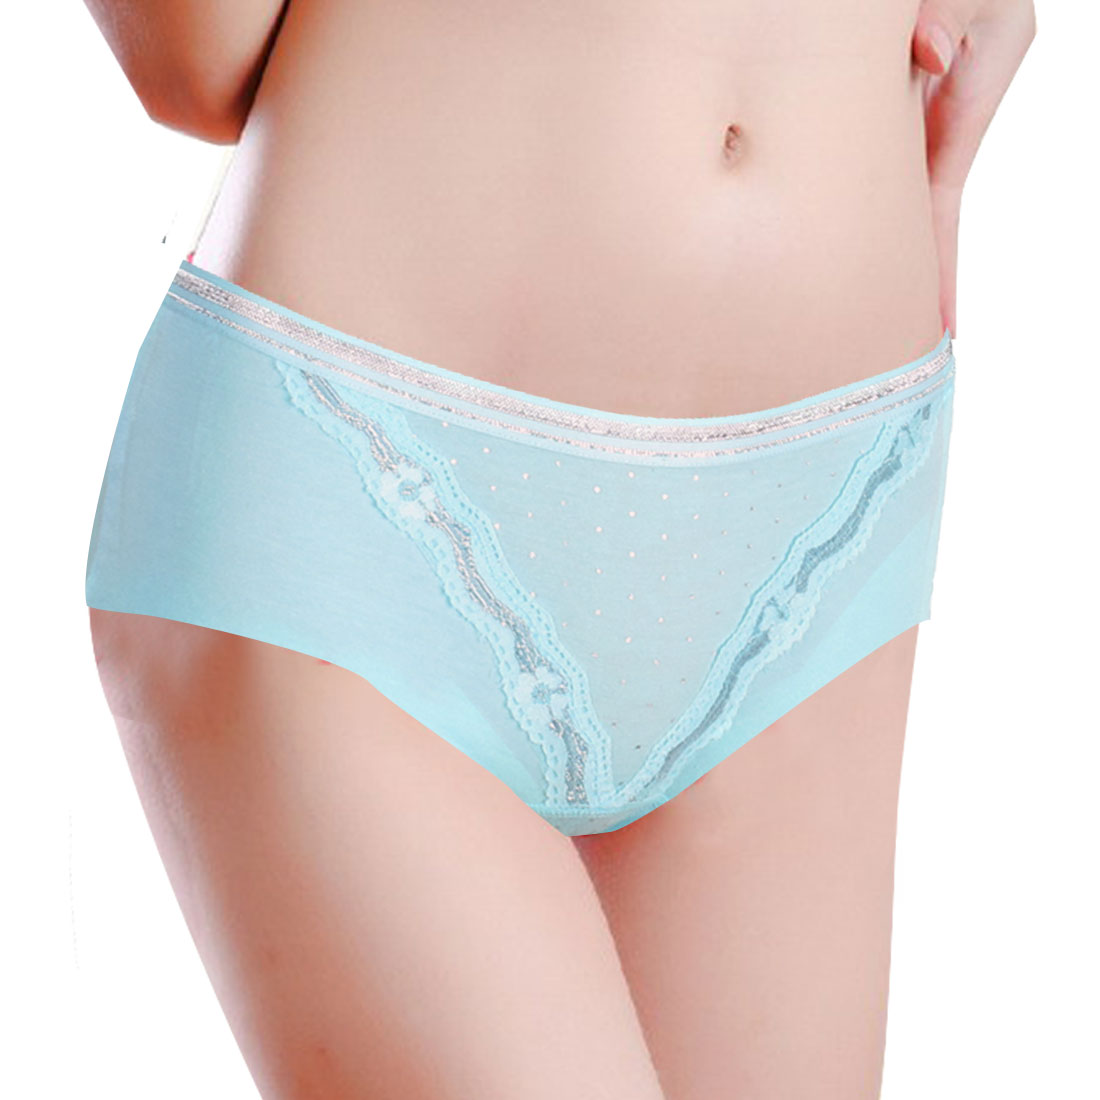 laced Edge Detail Natural Underwear Briefs Panties Blue XS for Woman